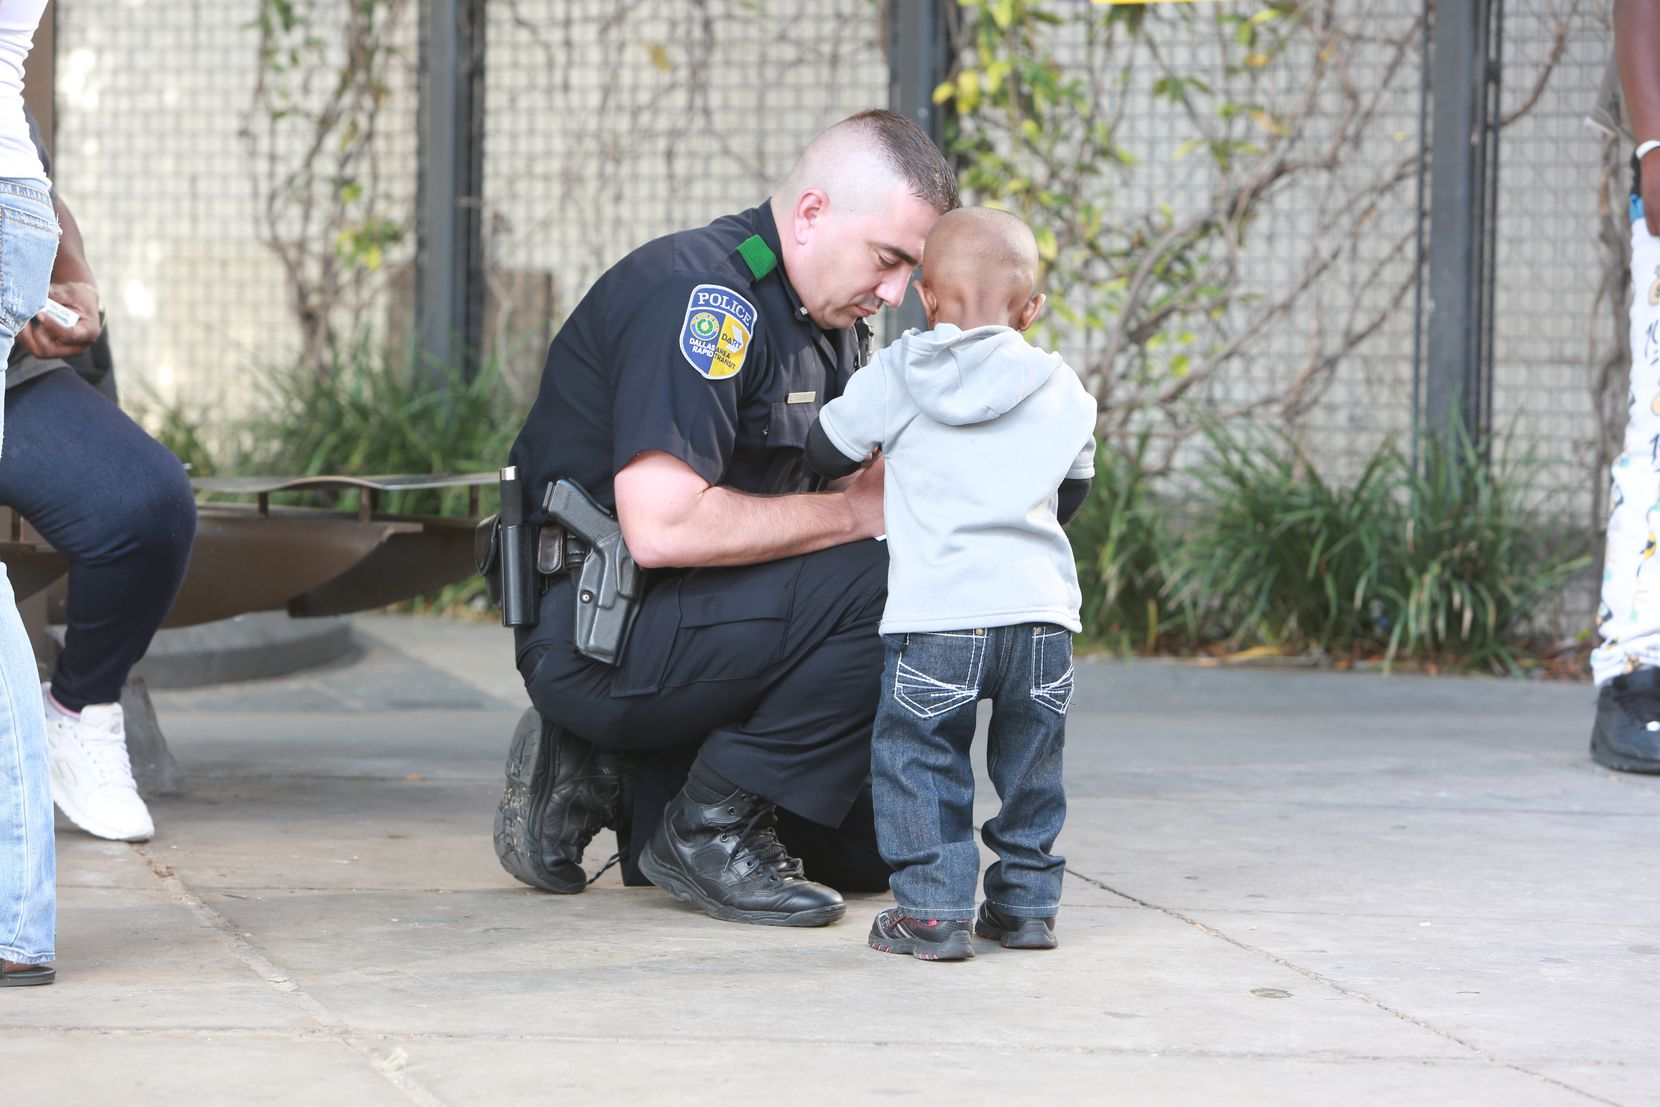 DART Officer Elmar Cannon interacts with a boy during a patrol in 2015 near the West End district in downtown Dallas.